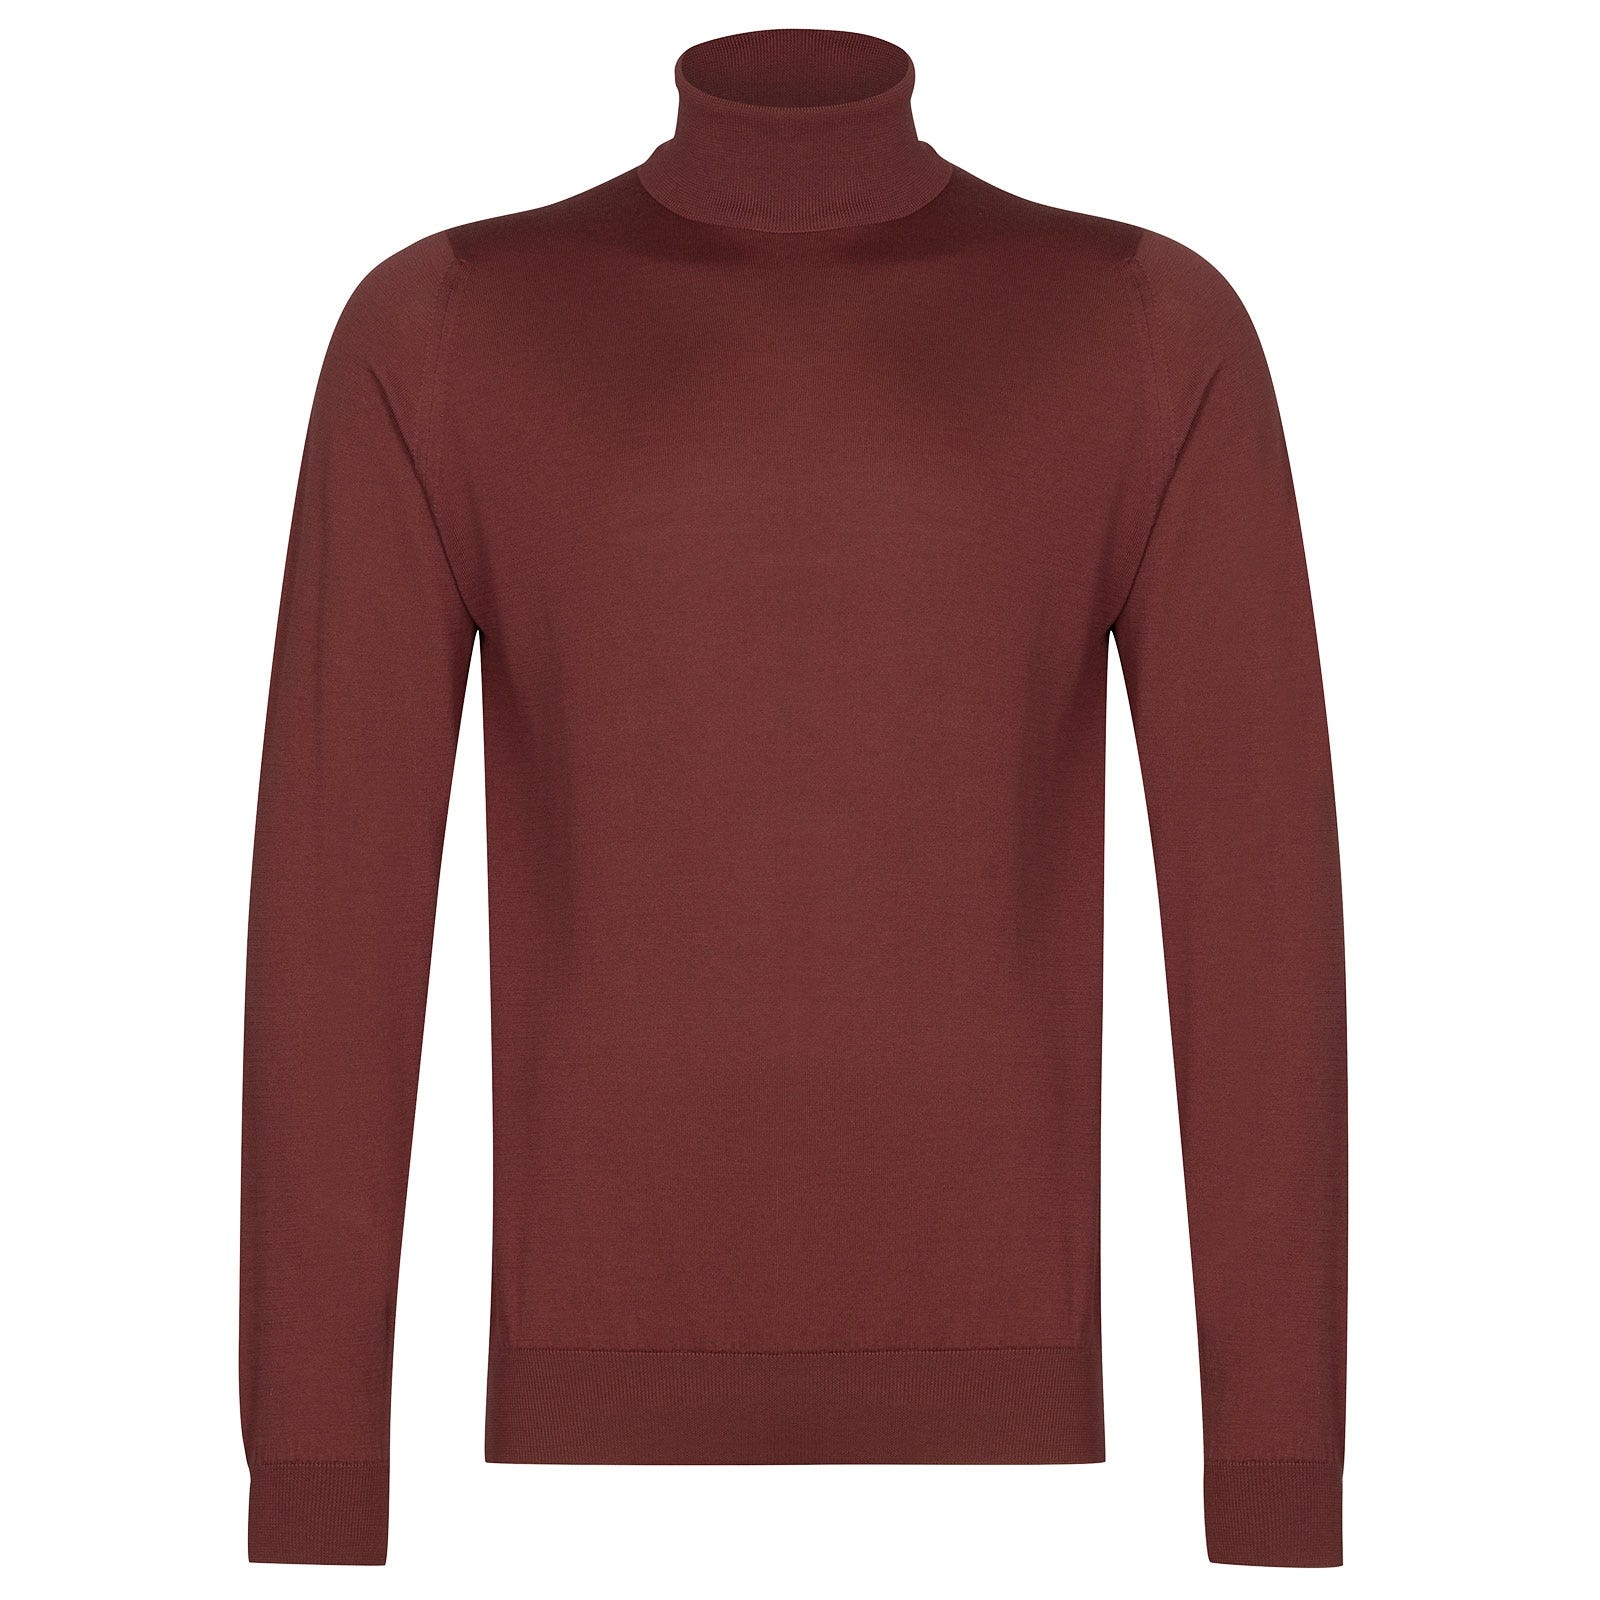 John Smedley Hawley in Botanical Blush Pullover-XLG